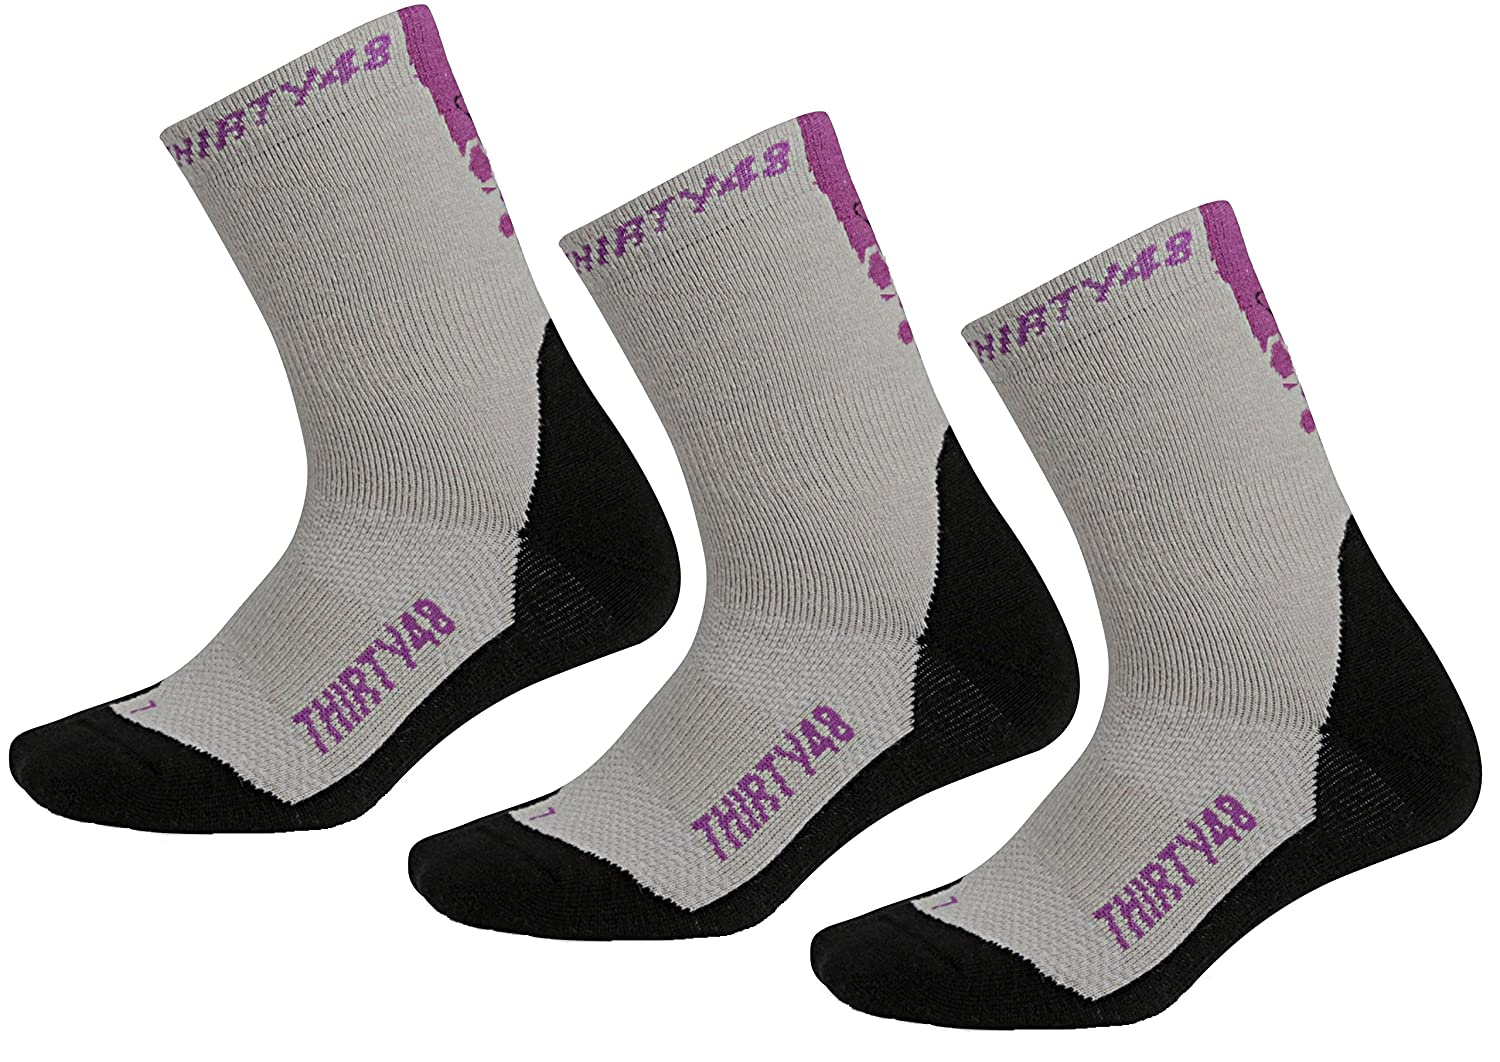 Thirty48 HK2PRG-3PK Durable Socks for Hiking, Mountain Climbing, Winter, Outdoor, Boots, Camping, Travel Purple/Gray Medium